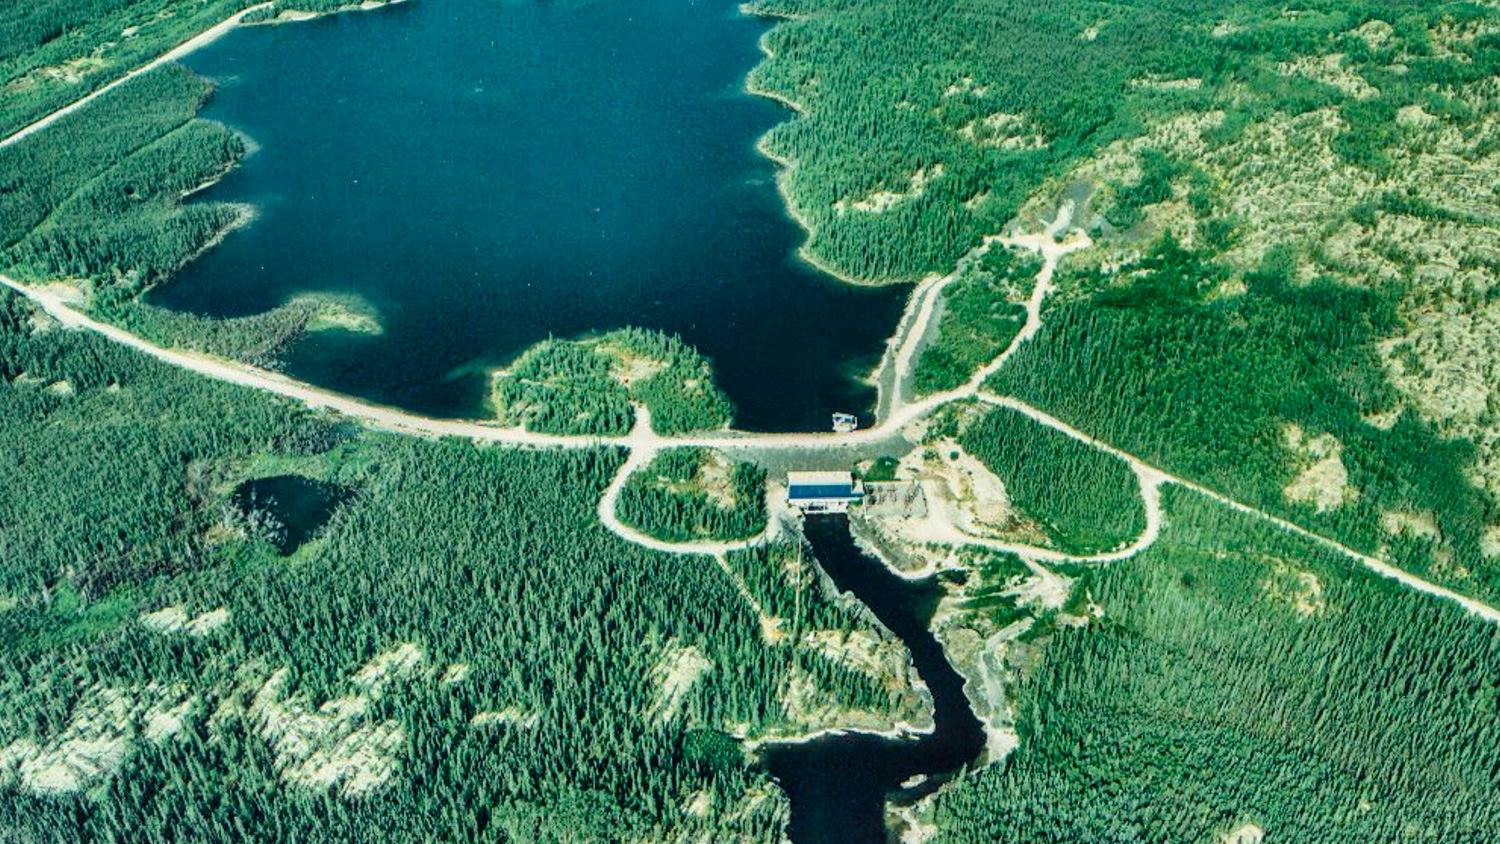 The Snare Forks hydro facility is seen in an aerial photograph taken in the early 2000s